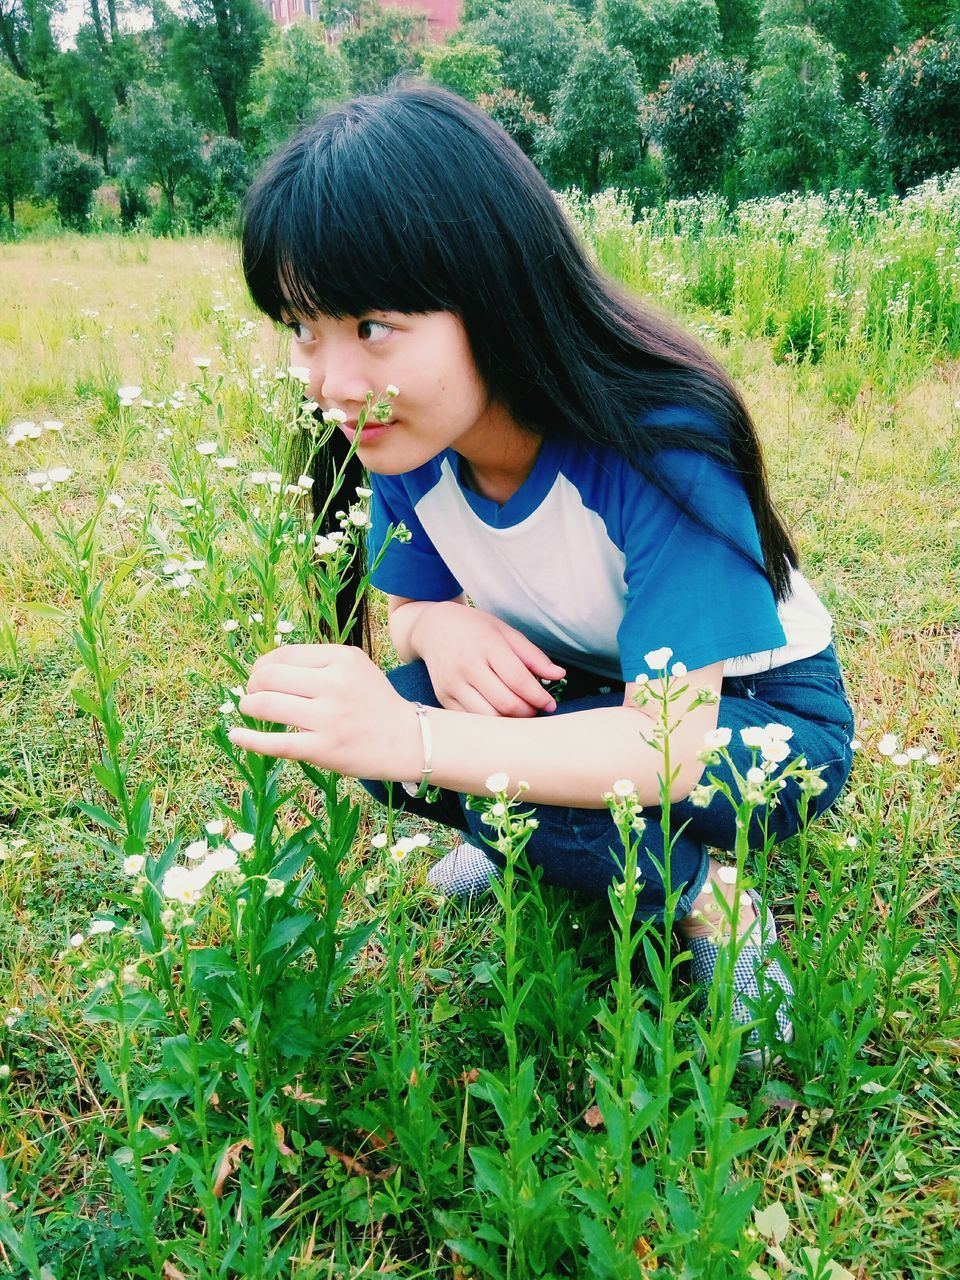 real people, field, one person, outdoors, growth, grass, nature, green color, young women, day, tree, young adult, beautiful woman, flower, human hand